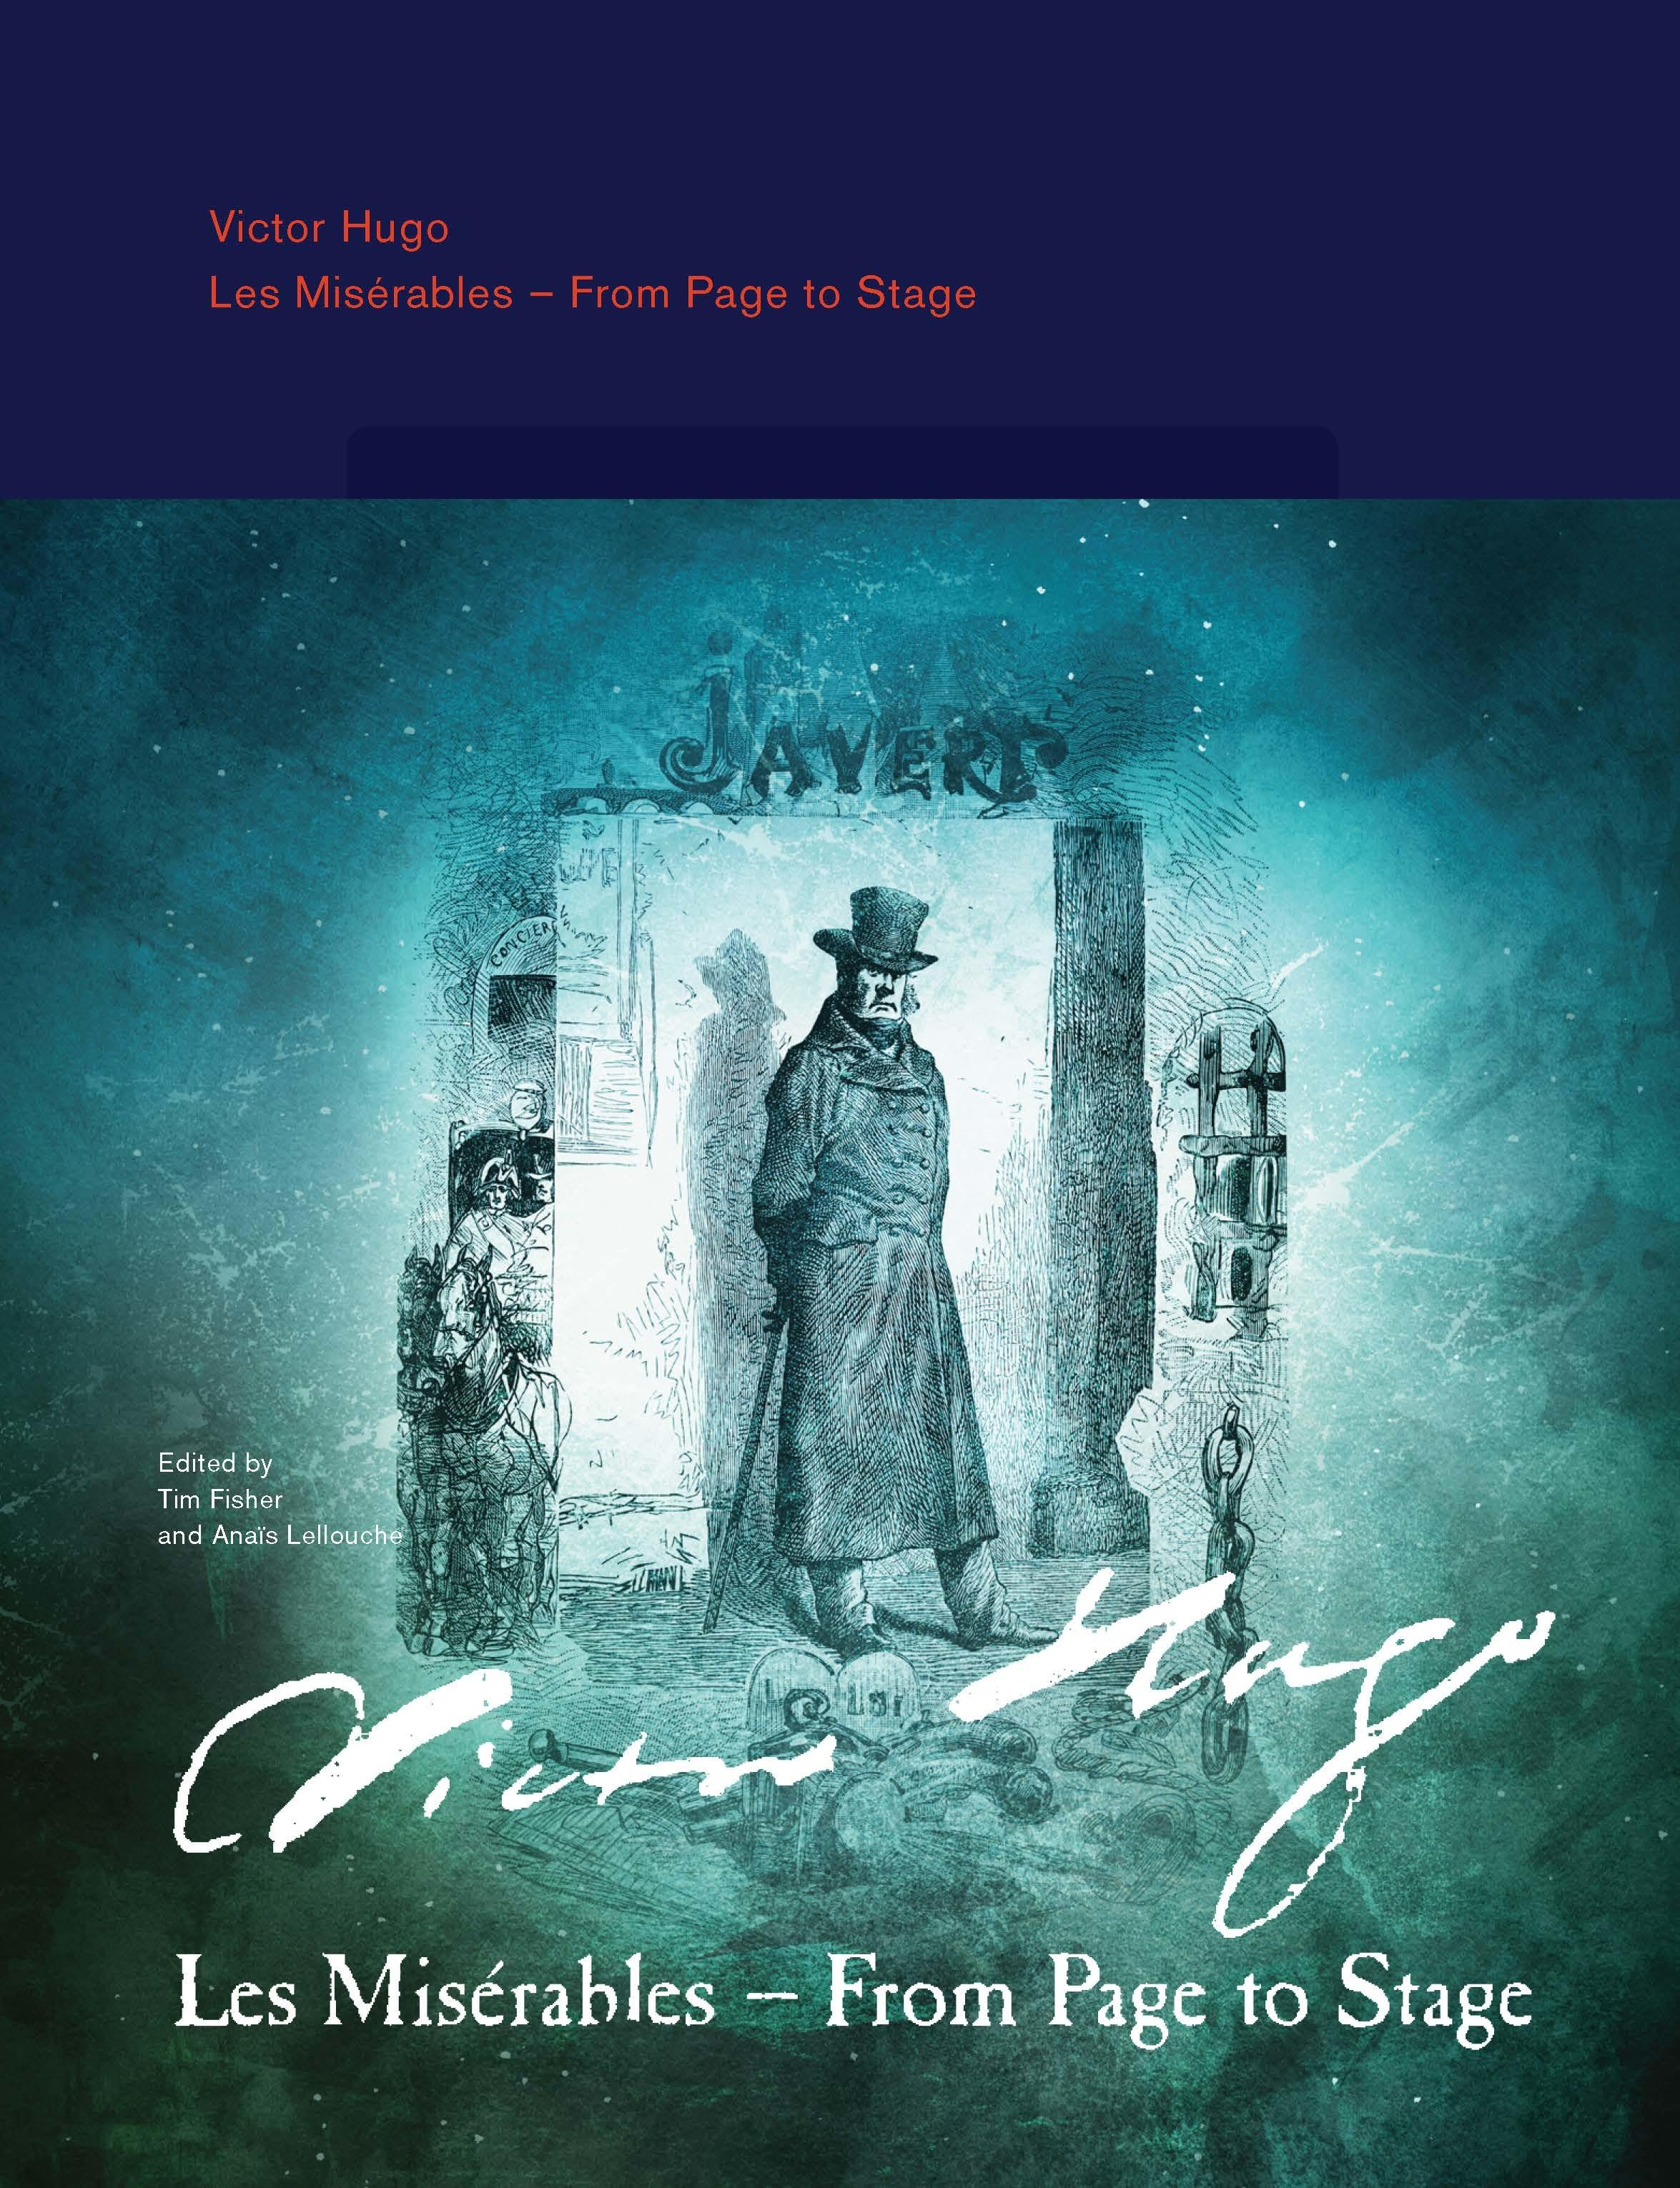 Victor Hugo: Les Misérables – From Page to Stage